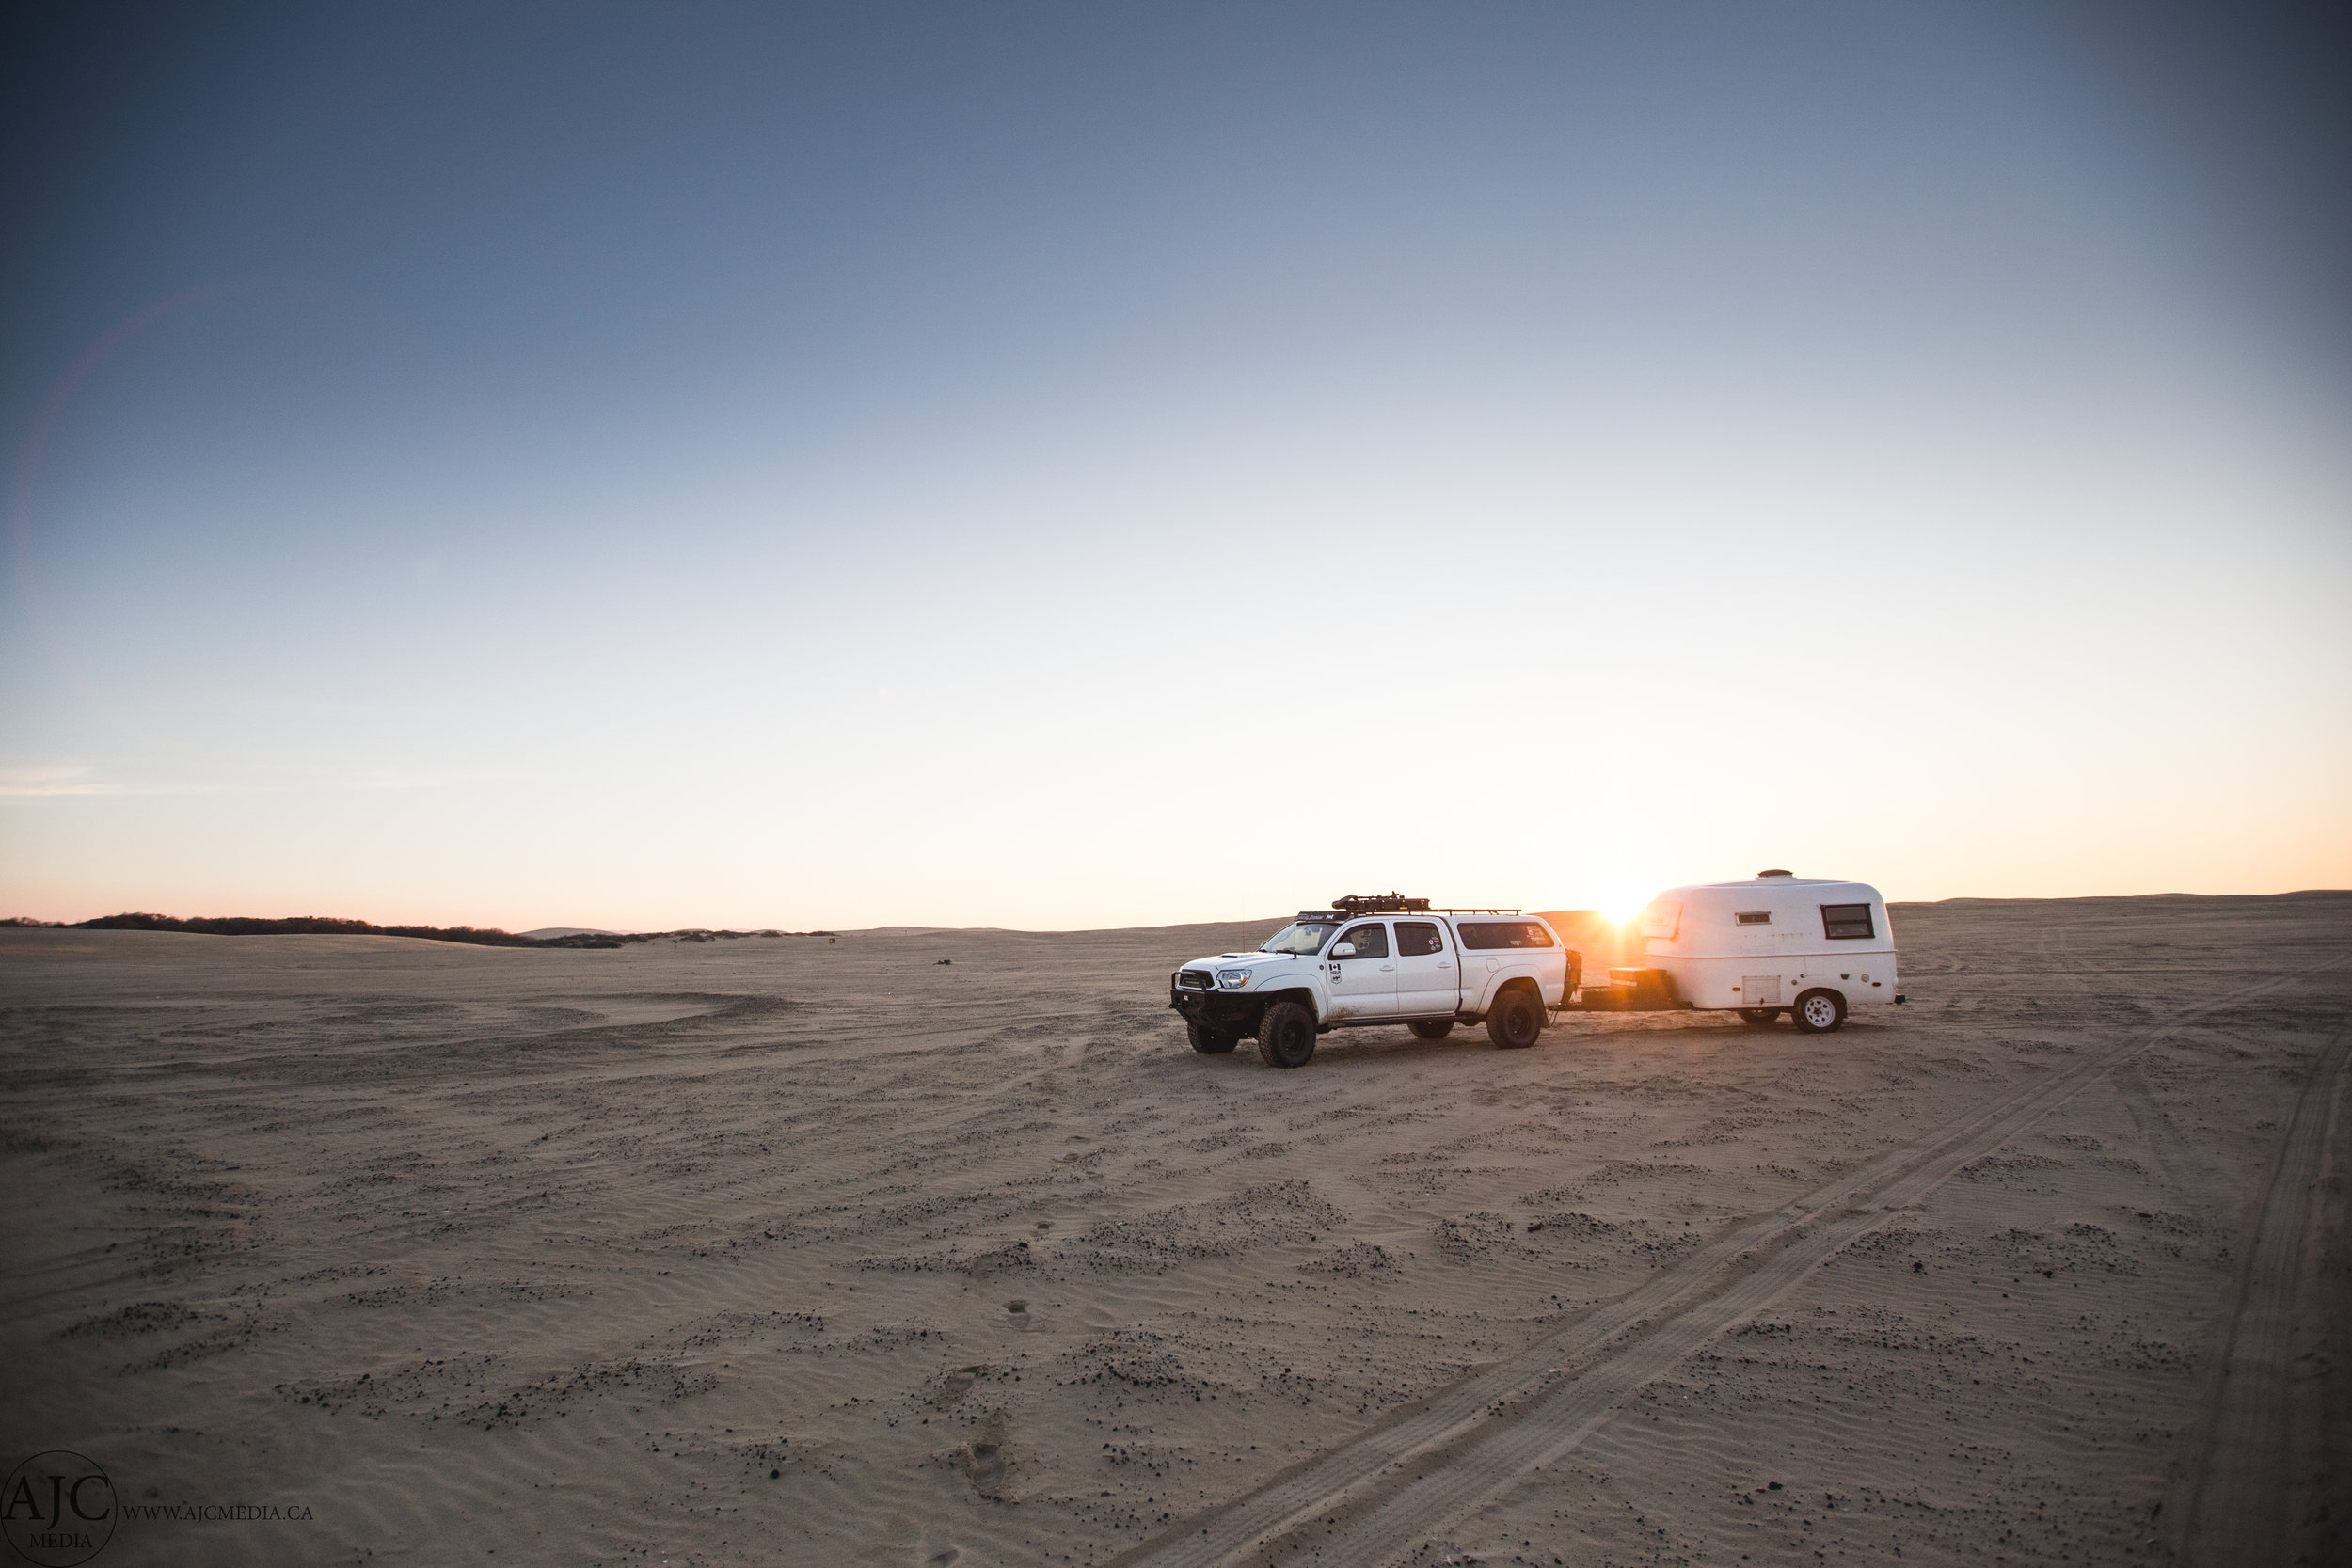 Just park in the middle of the massive sand plot beside the ocean...then call it home.